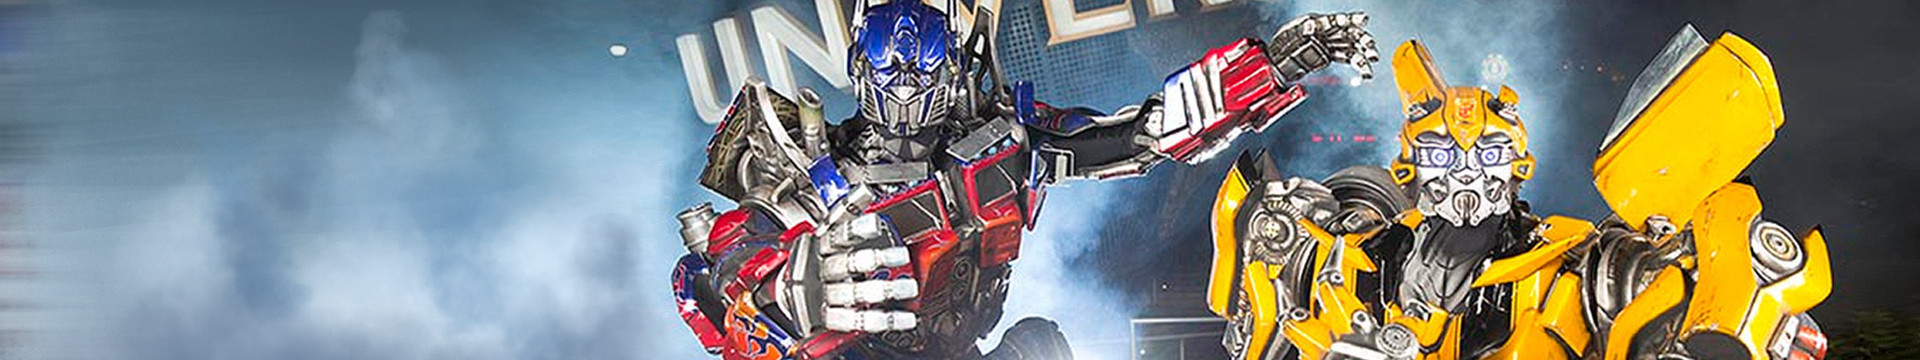 Visiting Transformers in front of Universal from our resorts near Universal Studios Orlando | Discounted Universal Studios Tickets | Specials on Theme Park Tickets